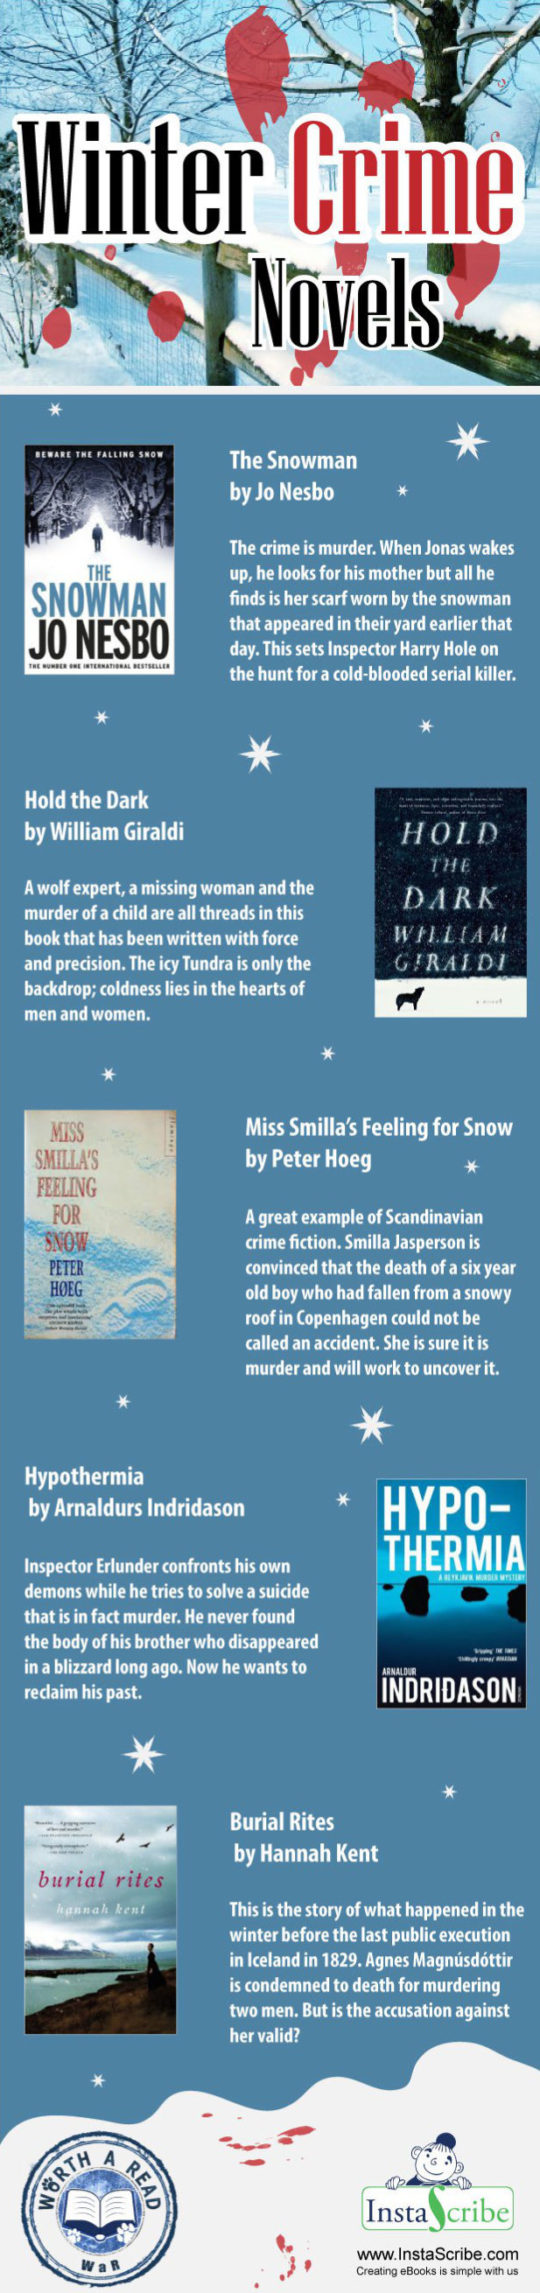 Winter crime novels #infographic